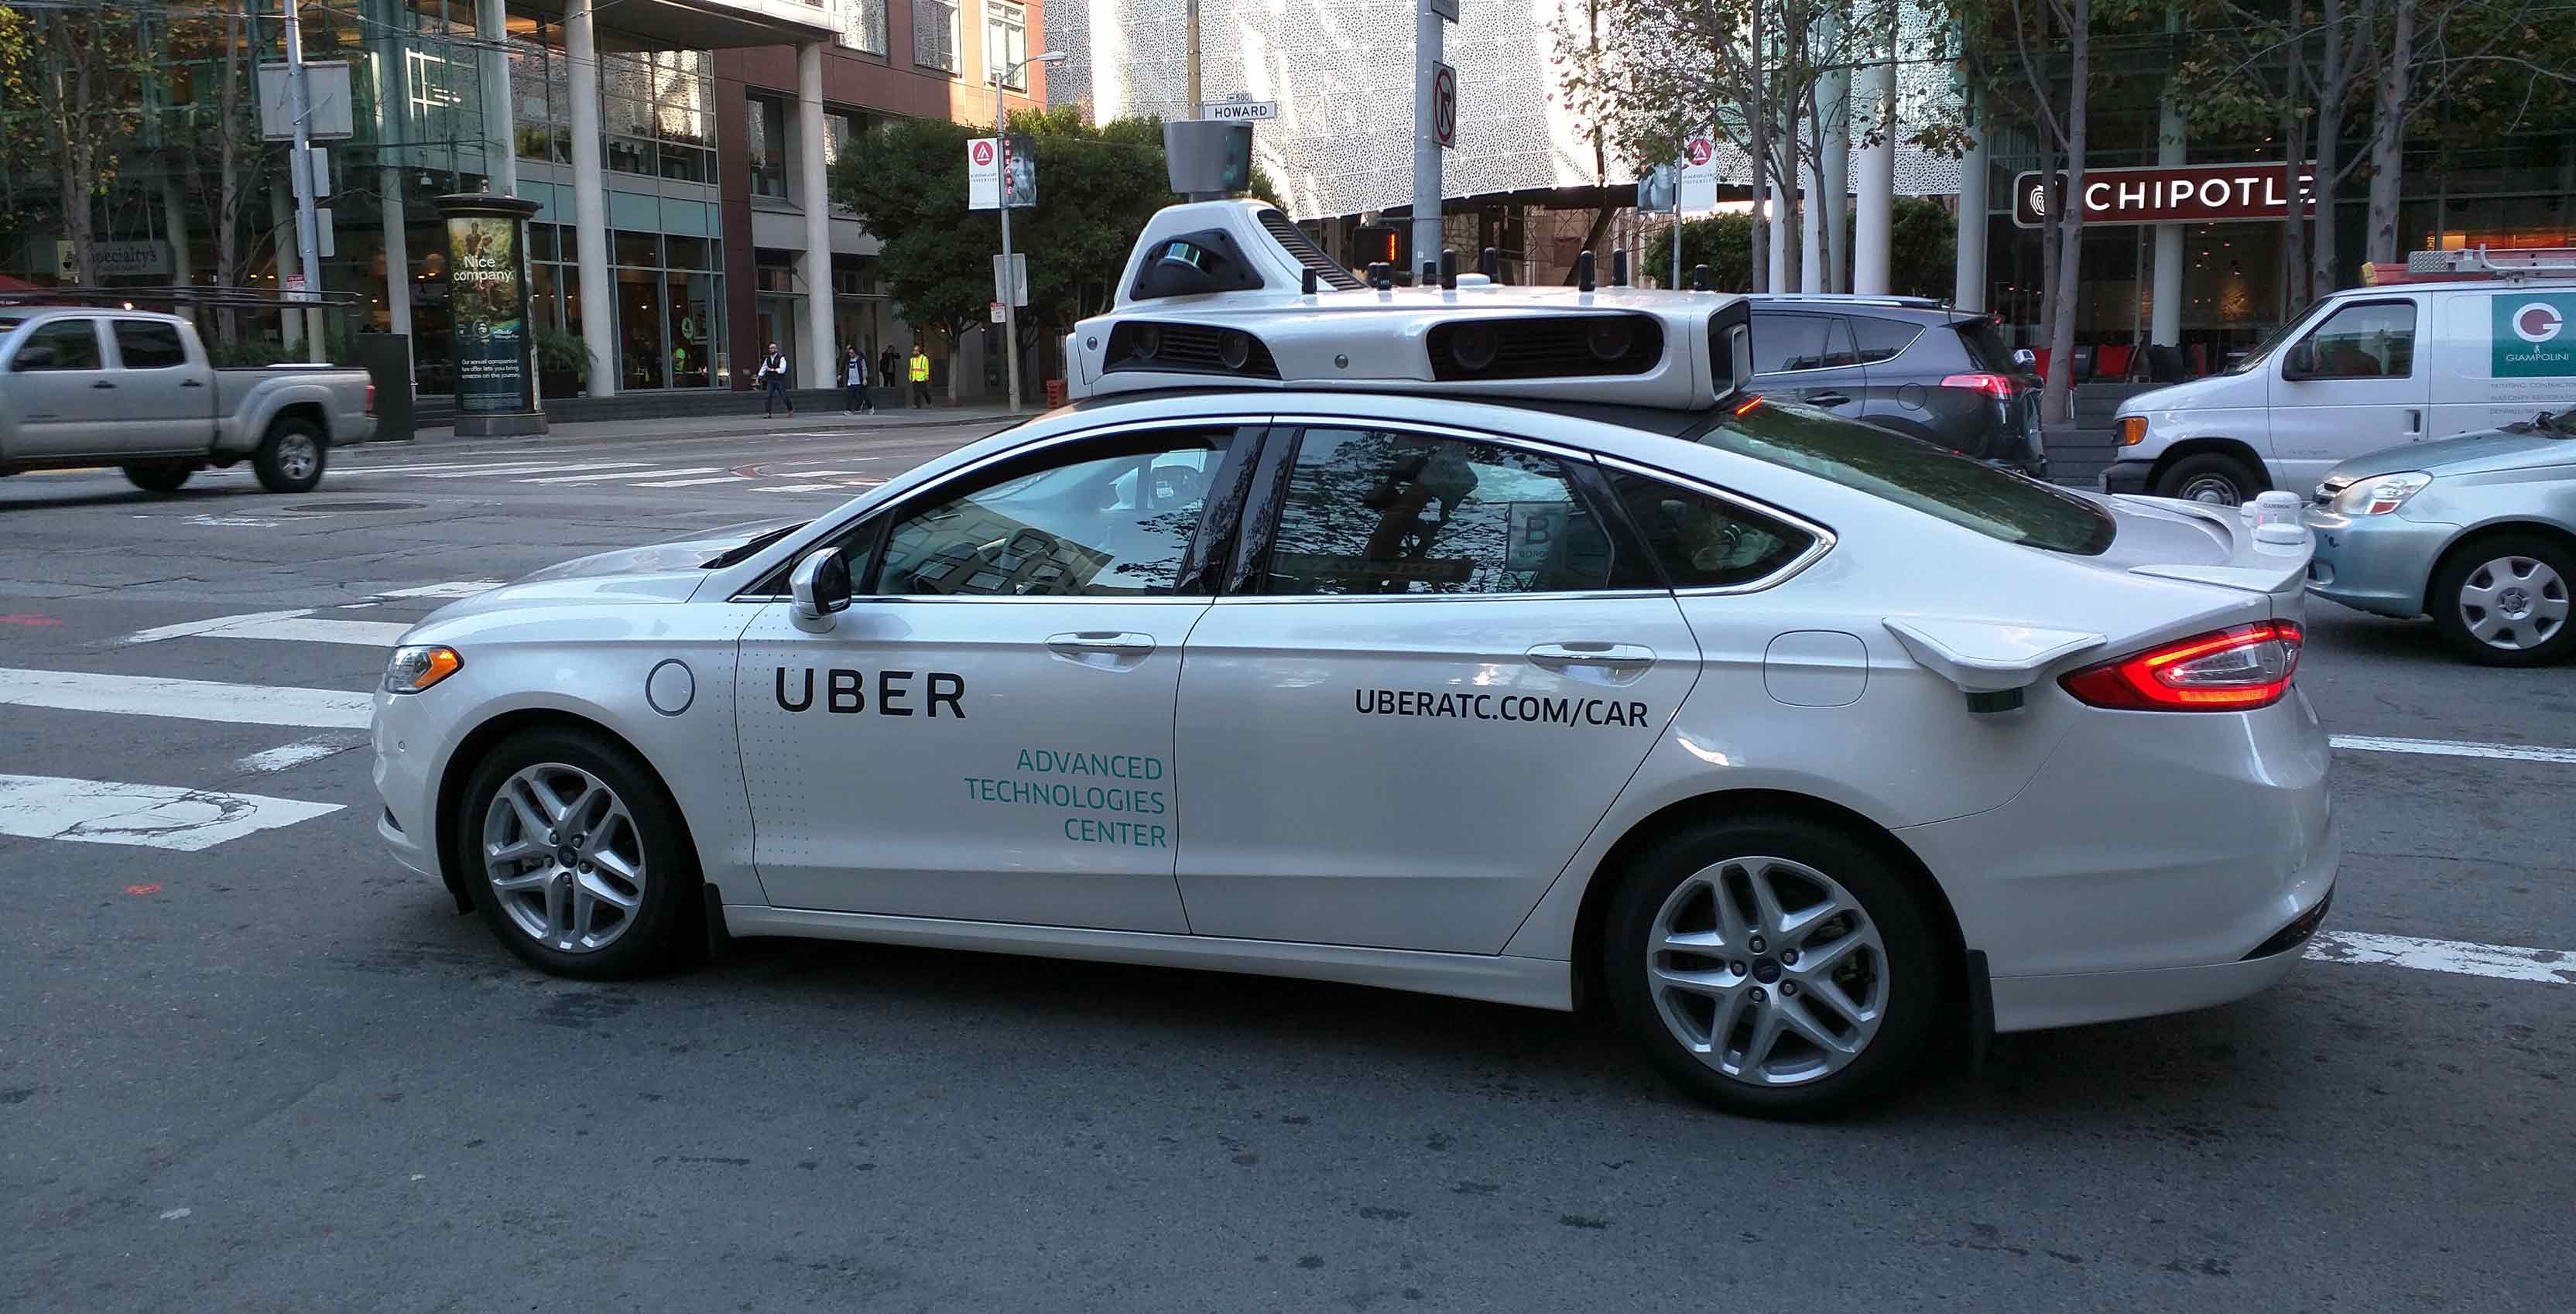 https://cdn.mobilesyrup.com/wp-content/uploads/2017/08/Uber_self-driving_car2.jpg